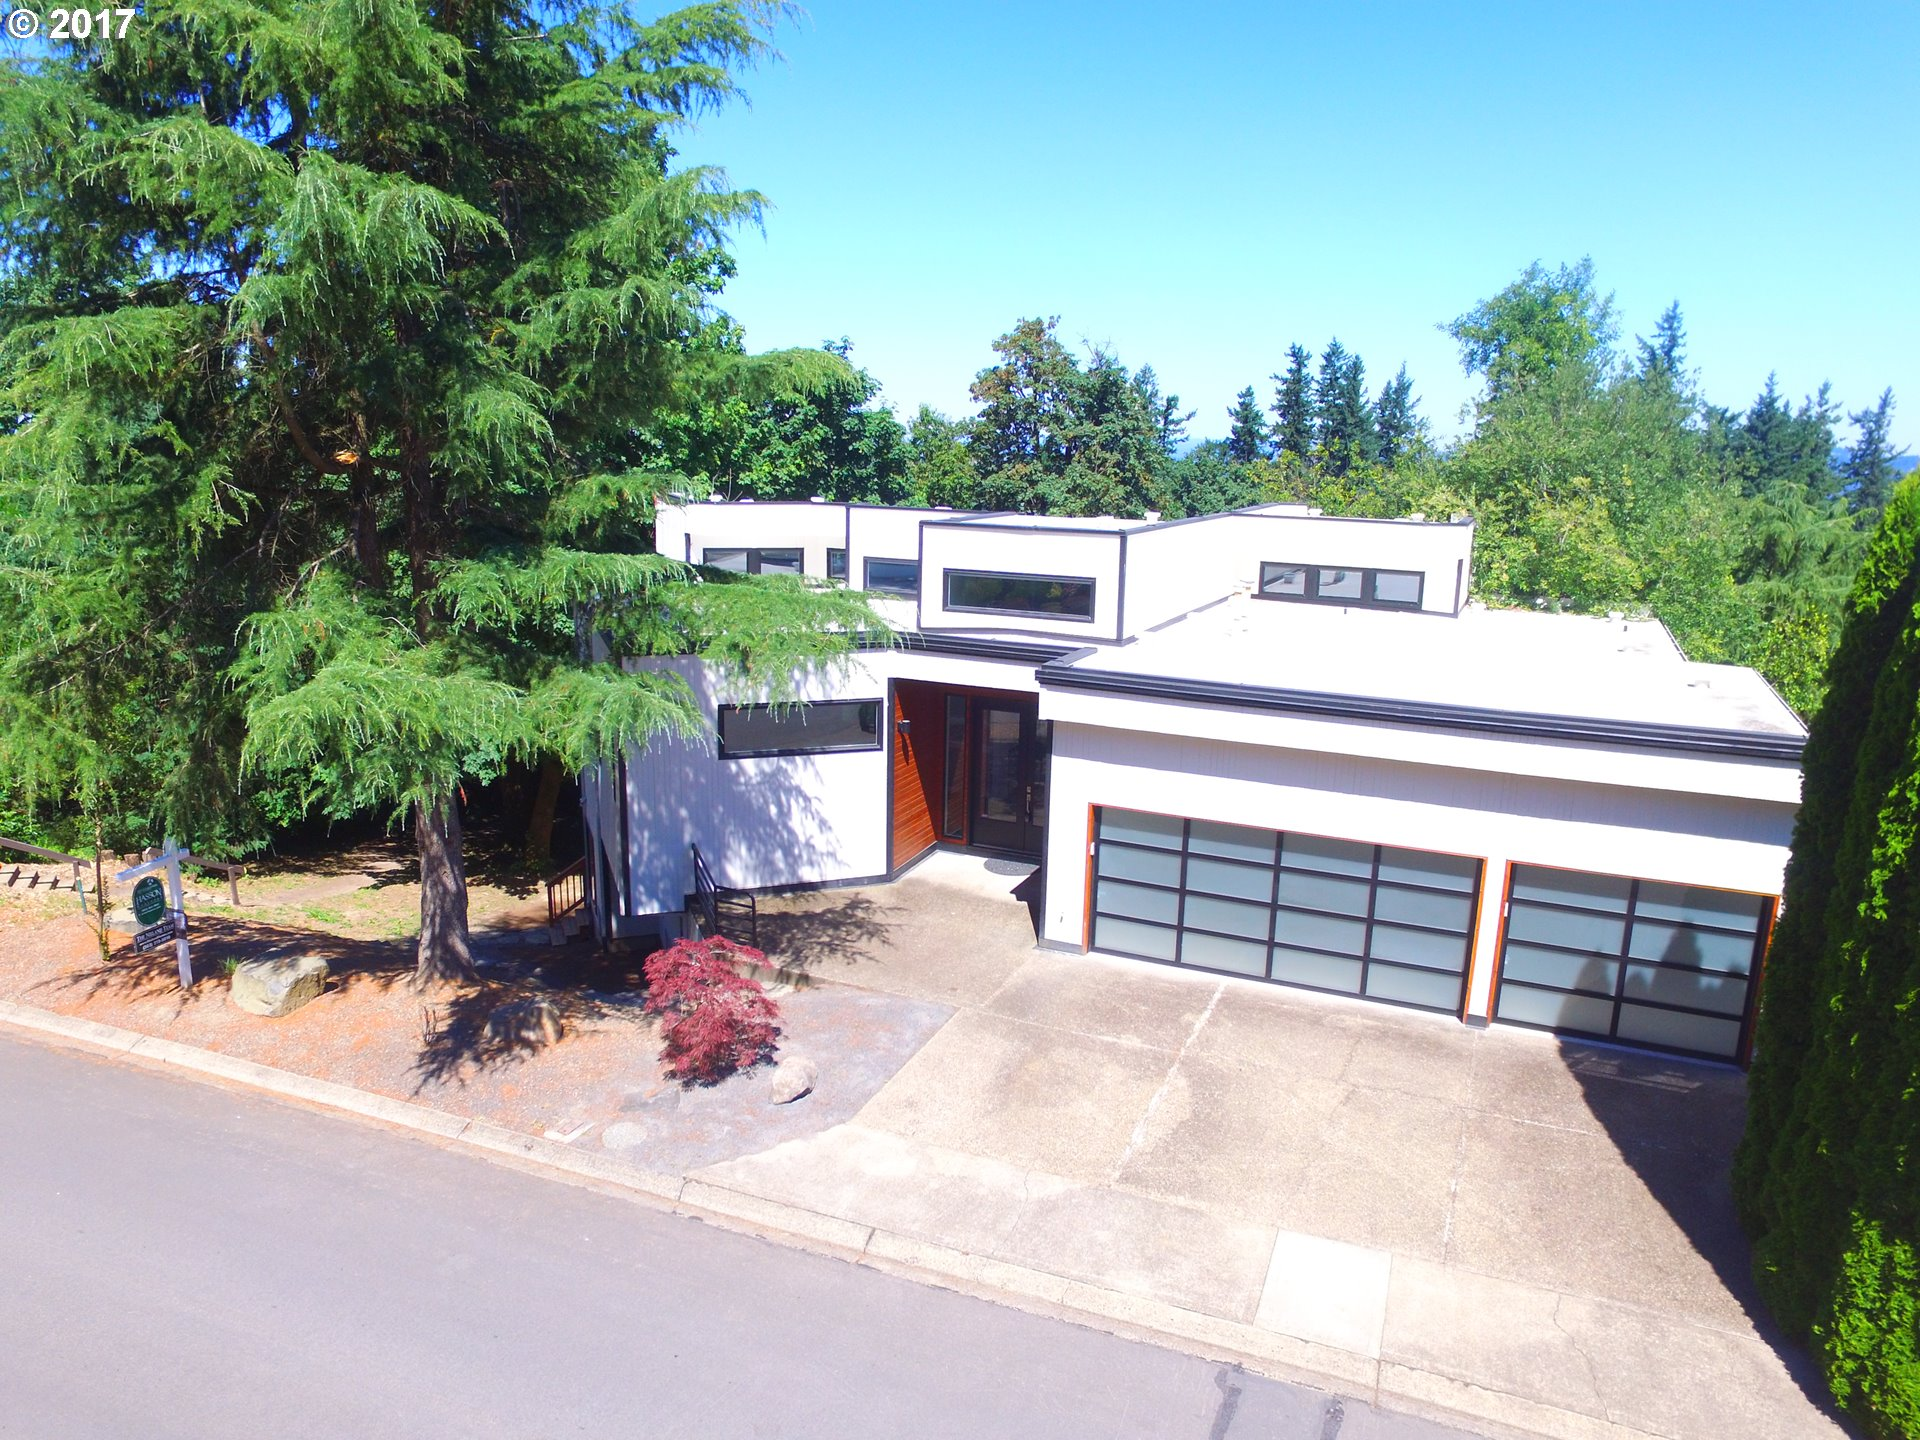 103 GARIBALDI ST, Lake Oswego, OR 97035